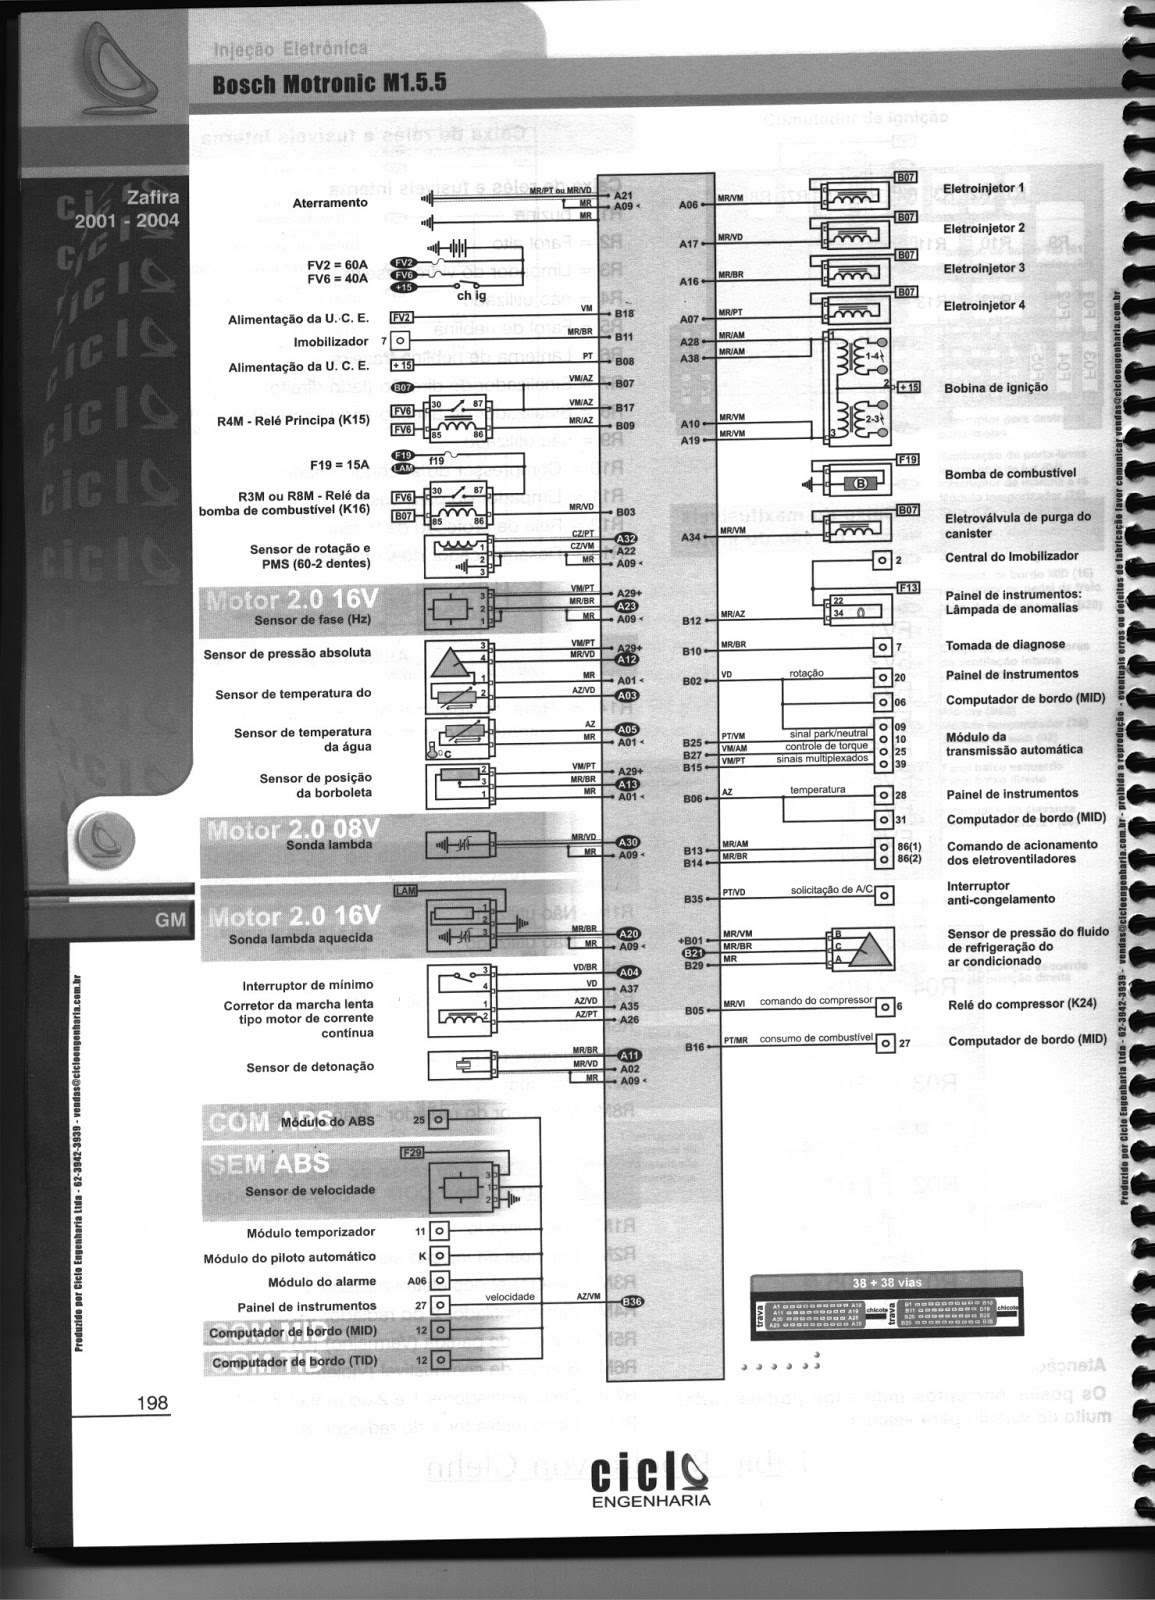 1992 Isuzu Radio Wiring Diagram Will Be A Thing Rodeo Mazda B2200 Fuse Box Free Engine Image For 1988 Trooper Electrical Stereo